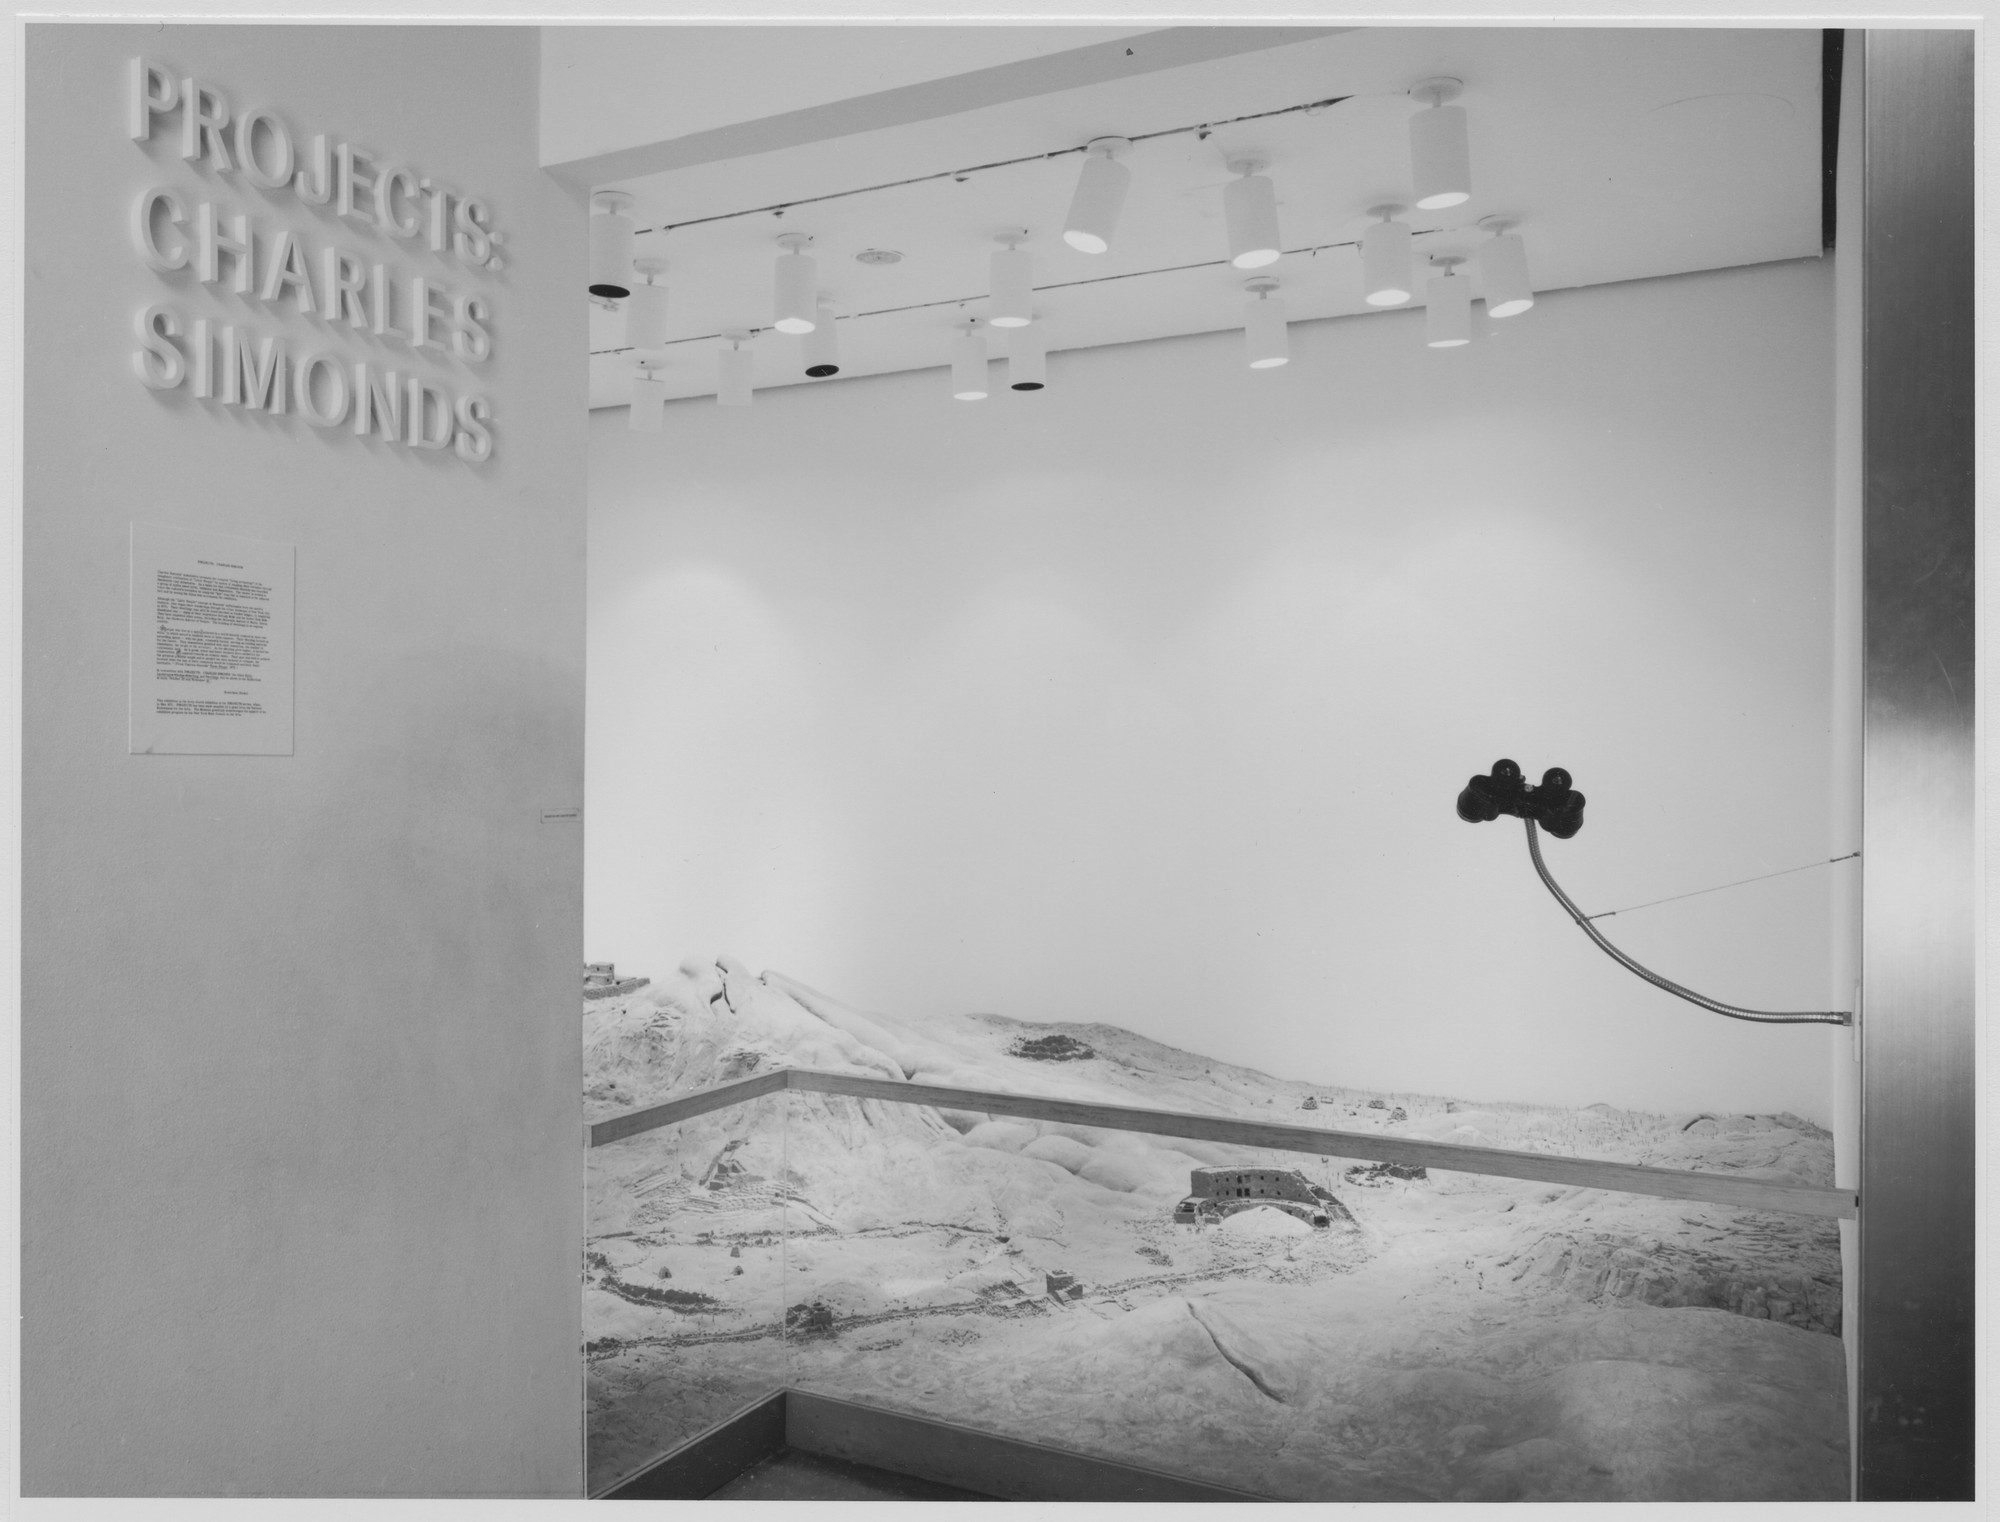 "Installation view of the exhibition, ""Projects: Charles Simonds and Mary Miss."" October 14, 1976–December 2, 1976. Photographic Archive. The Museum of Modern Art Archives, New York. IN1152.1. Photograph by David Allison."